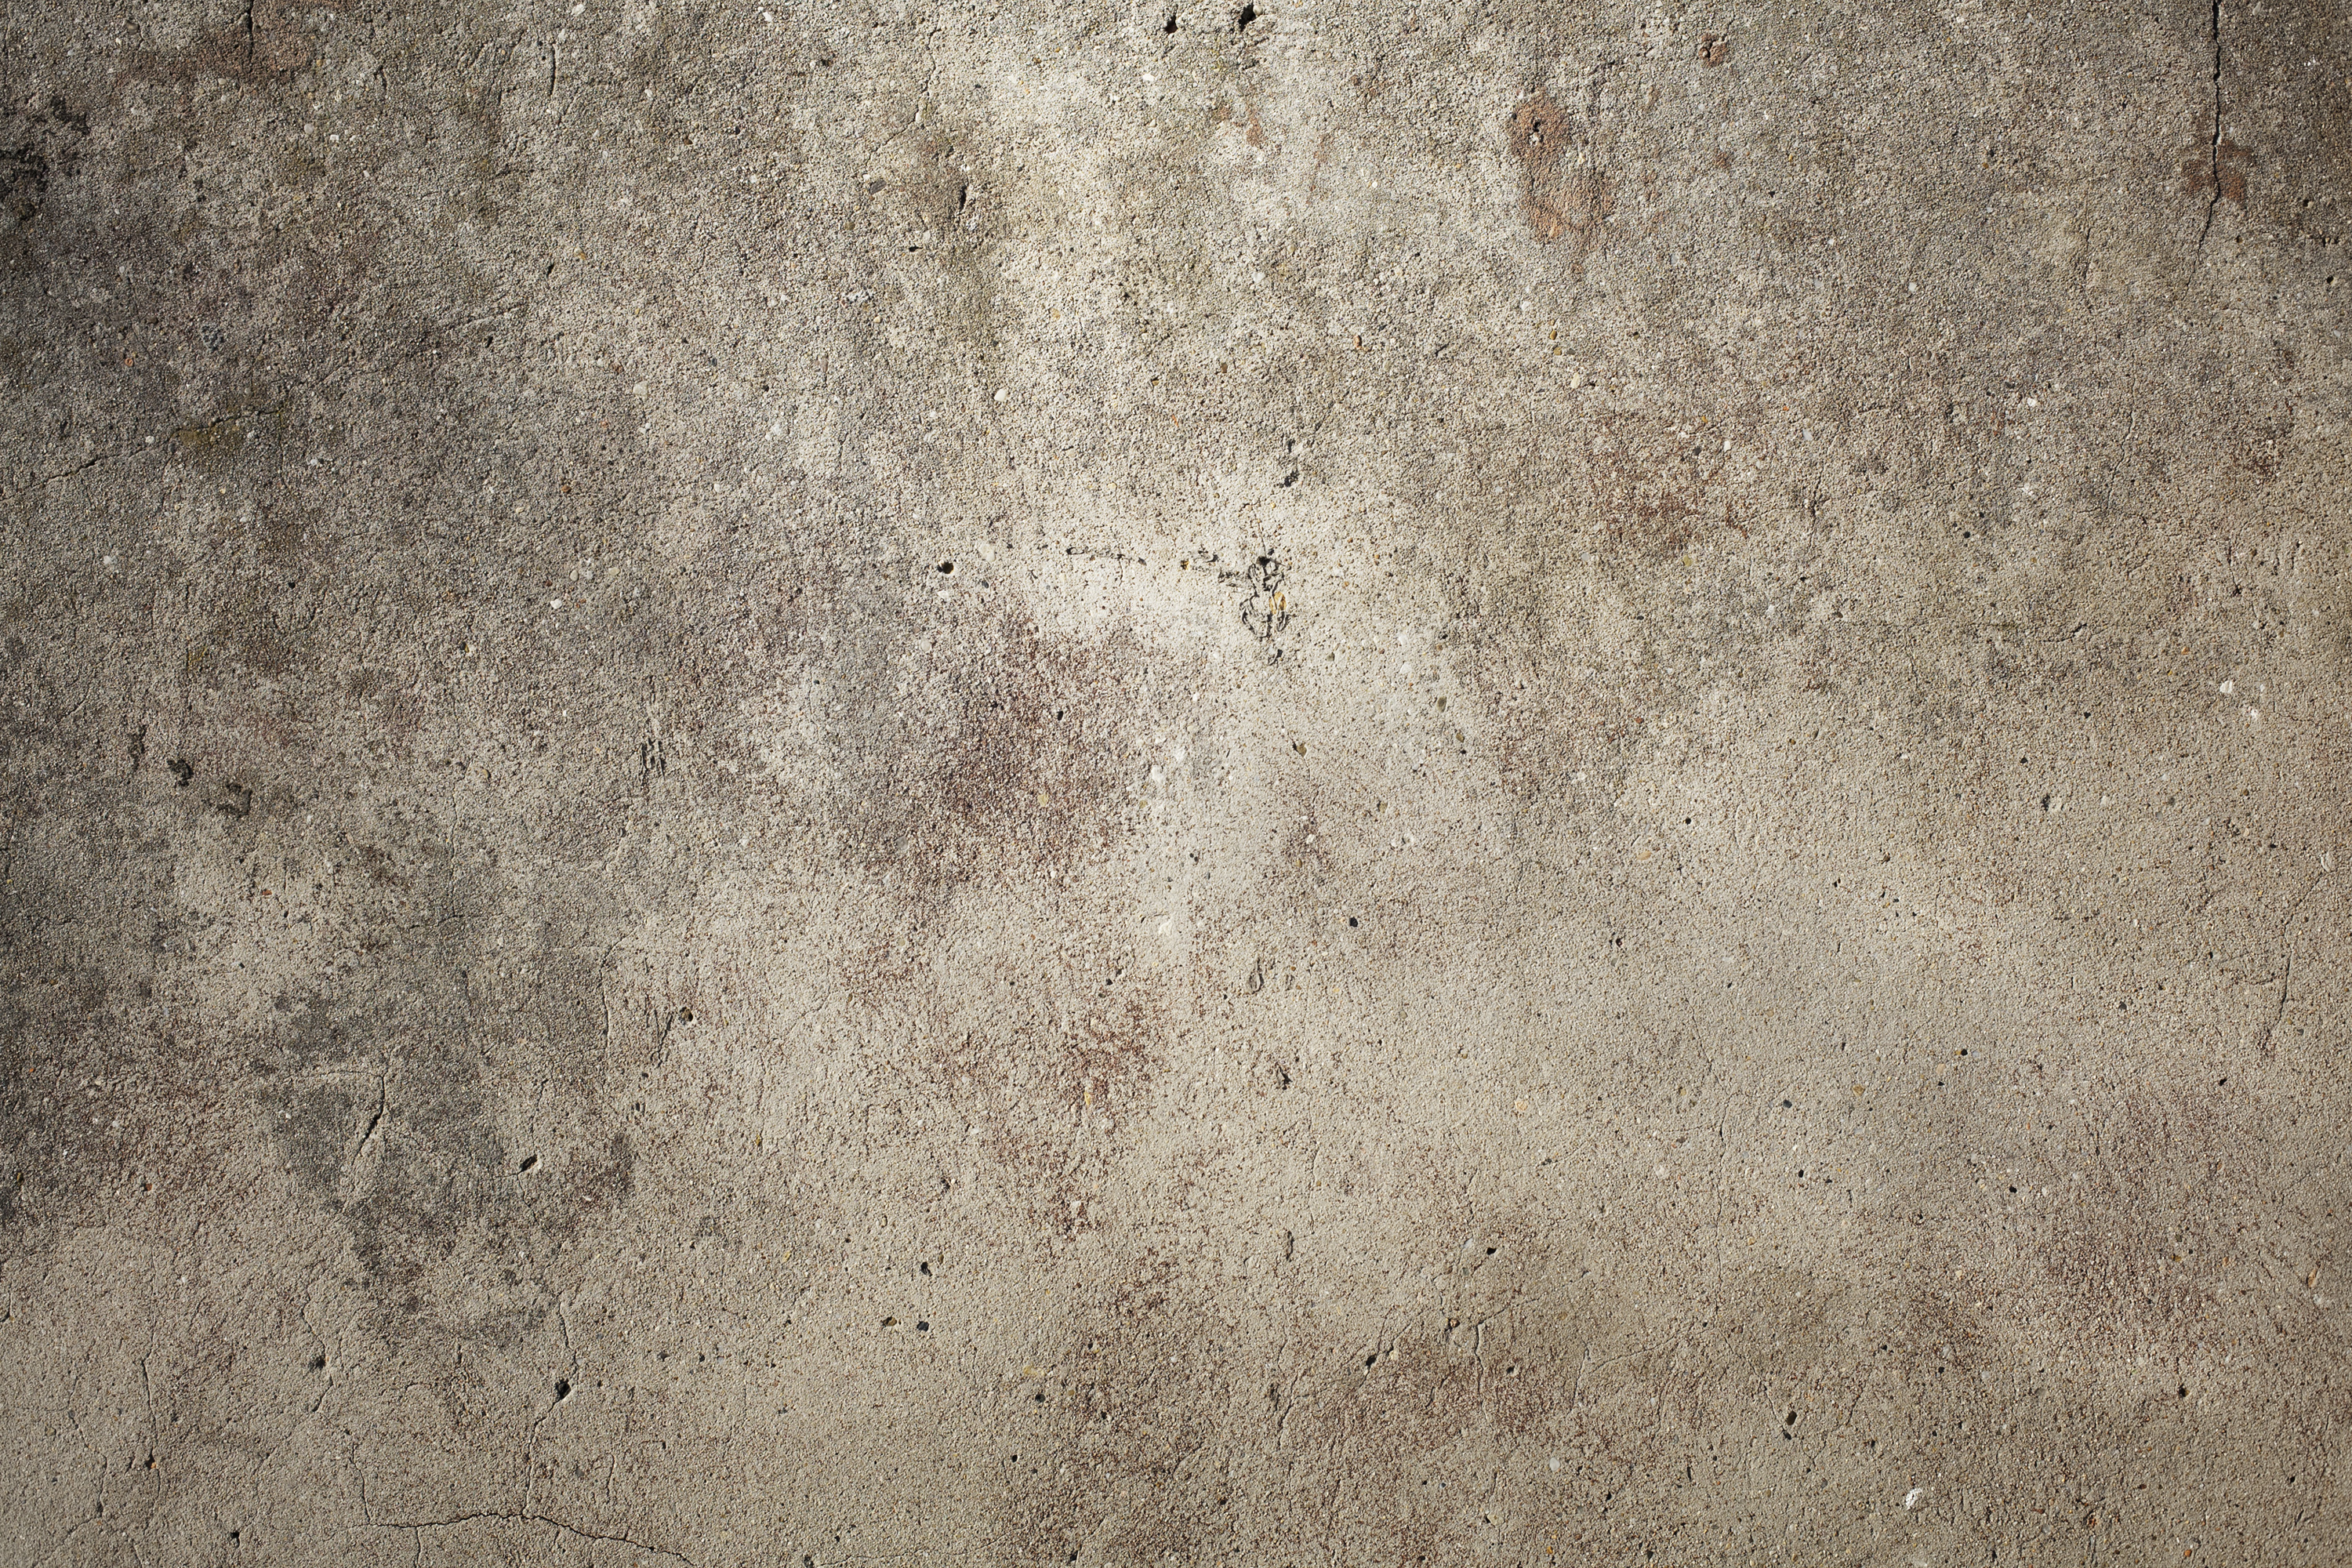 Abstract Grunge Background Texture Wallpaper #1195